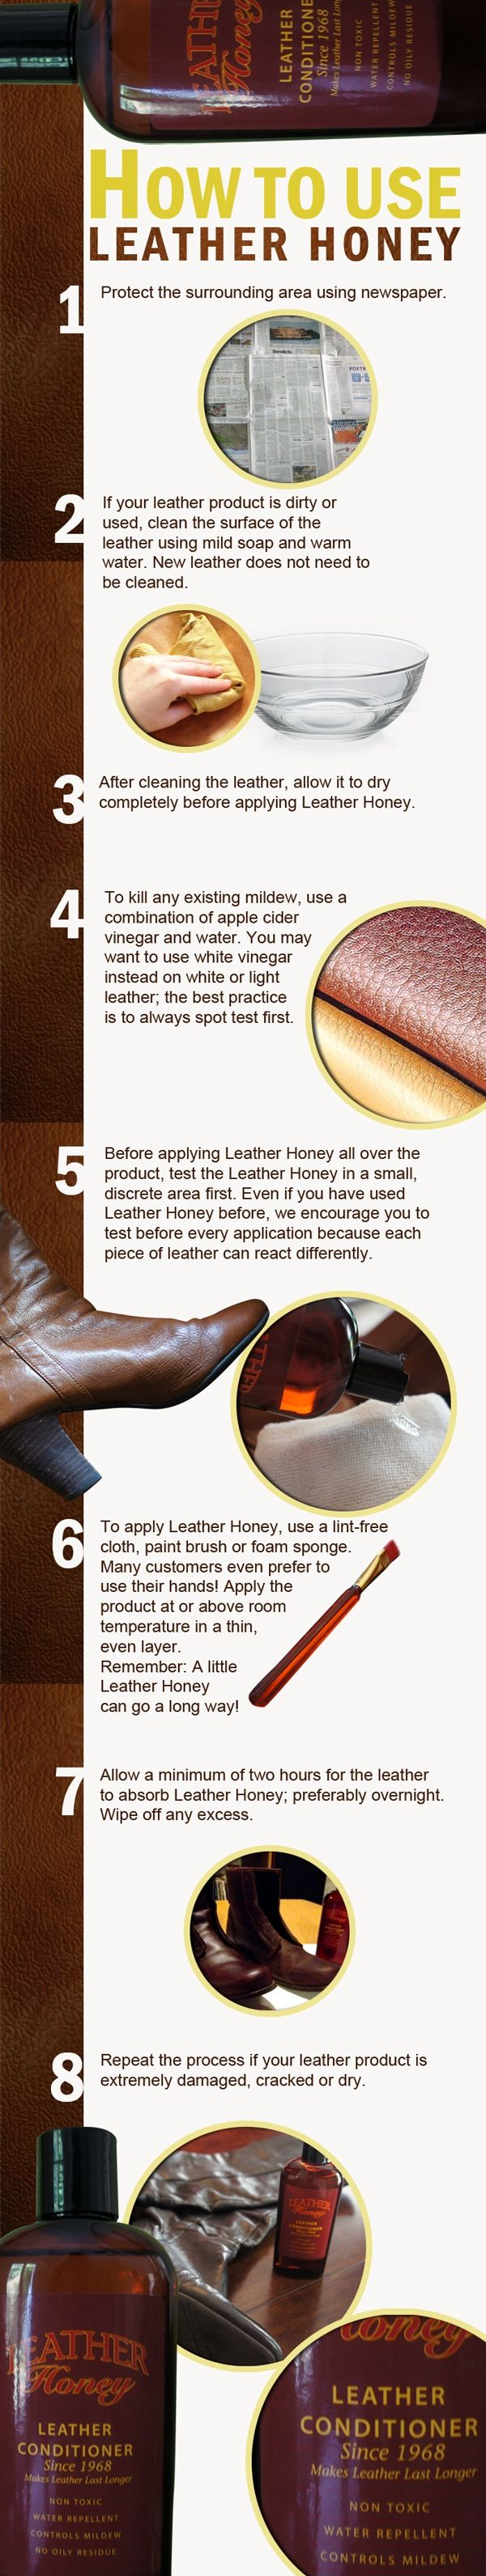 Modern Sofa How to clean leather and apply Leather Honey A helpful infographic